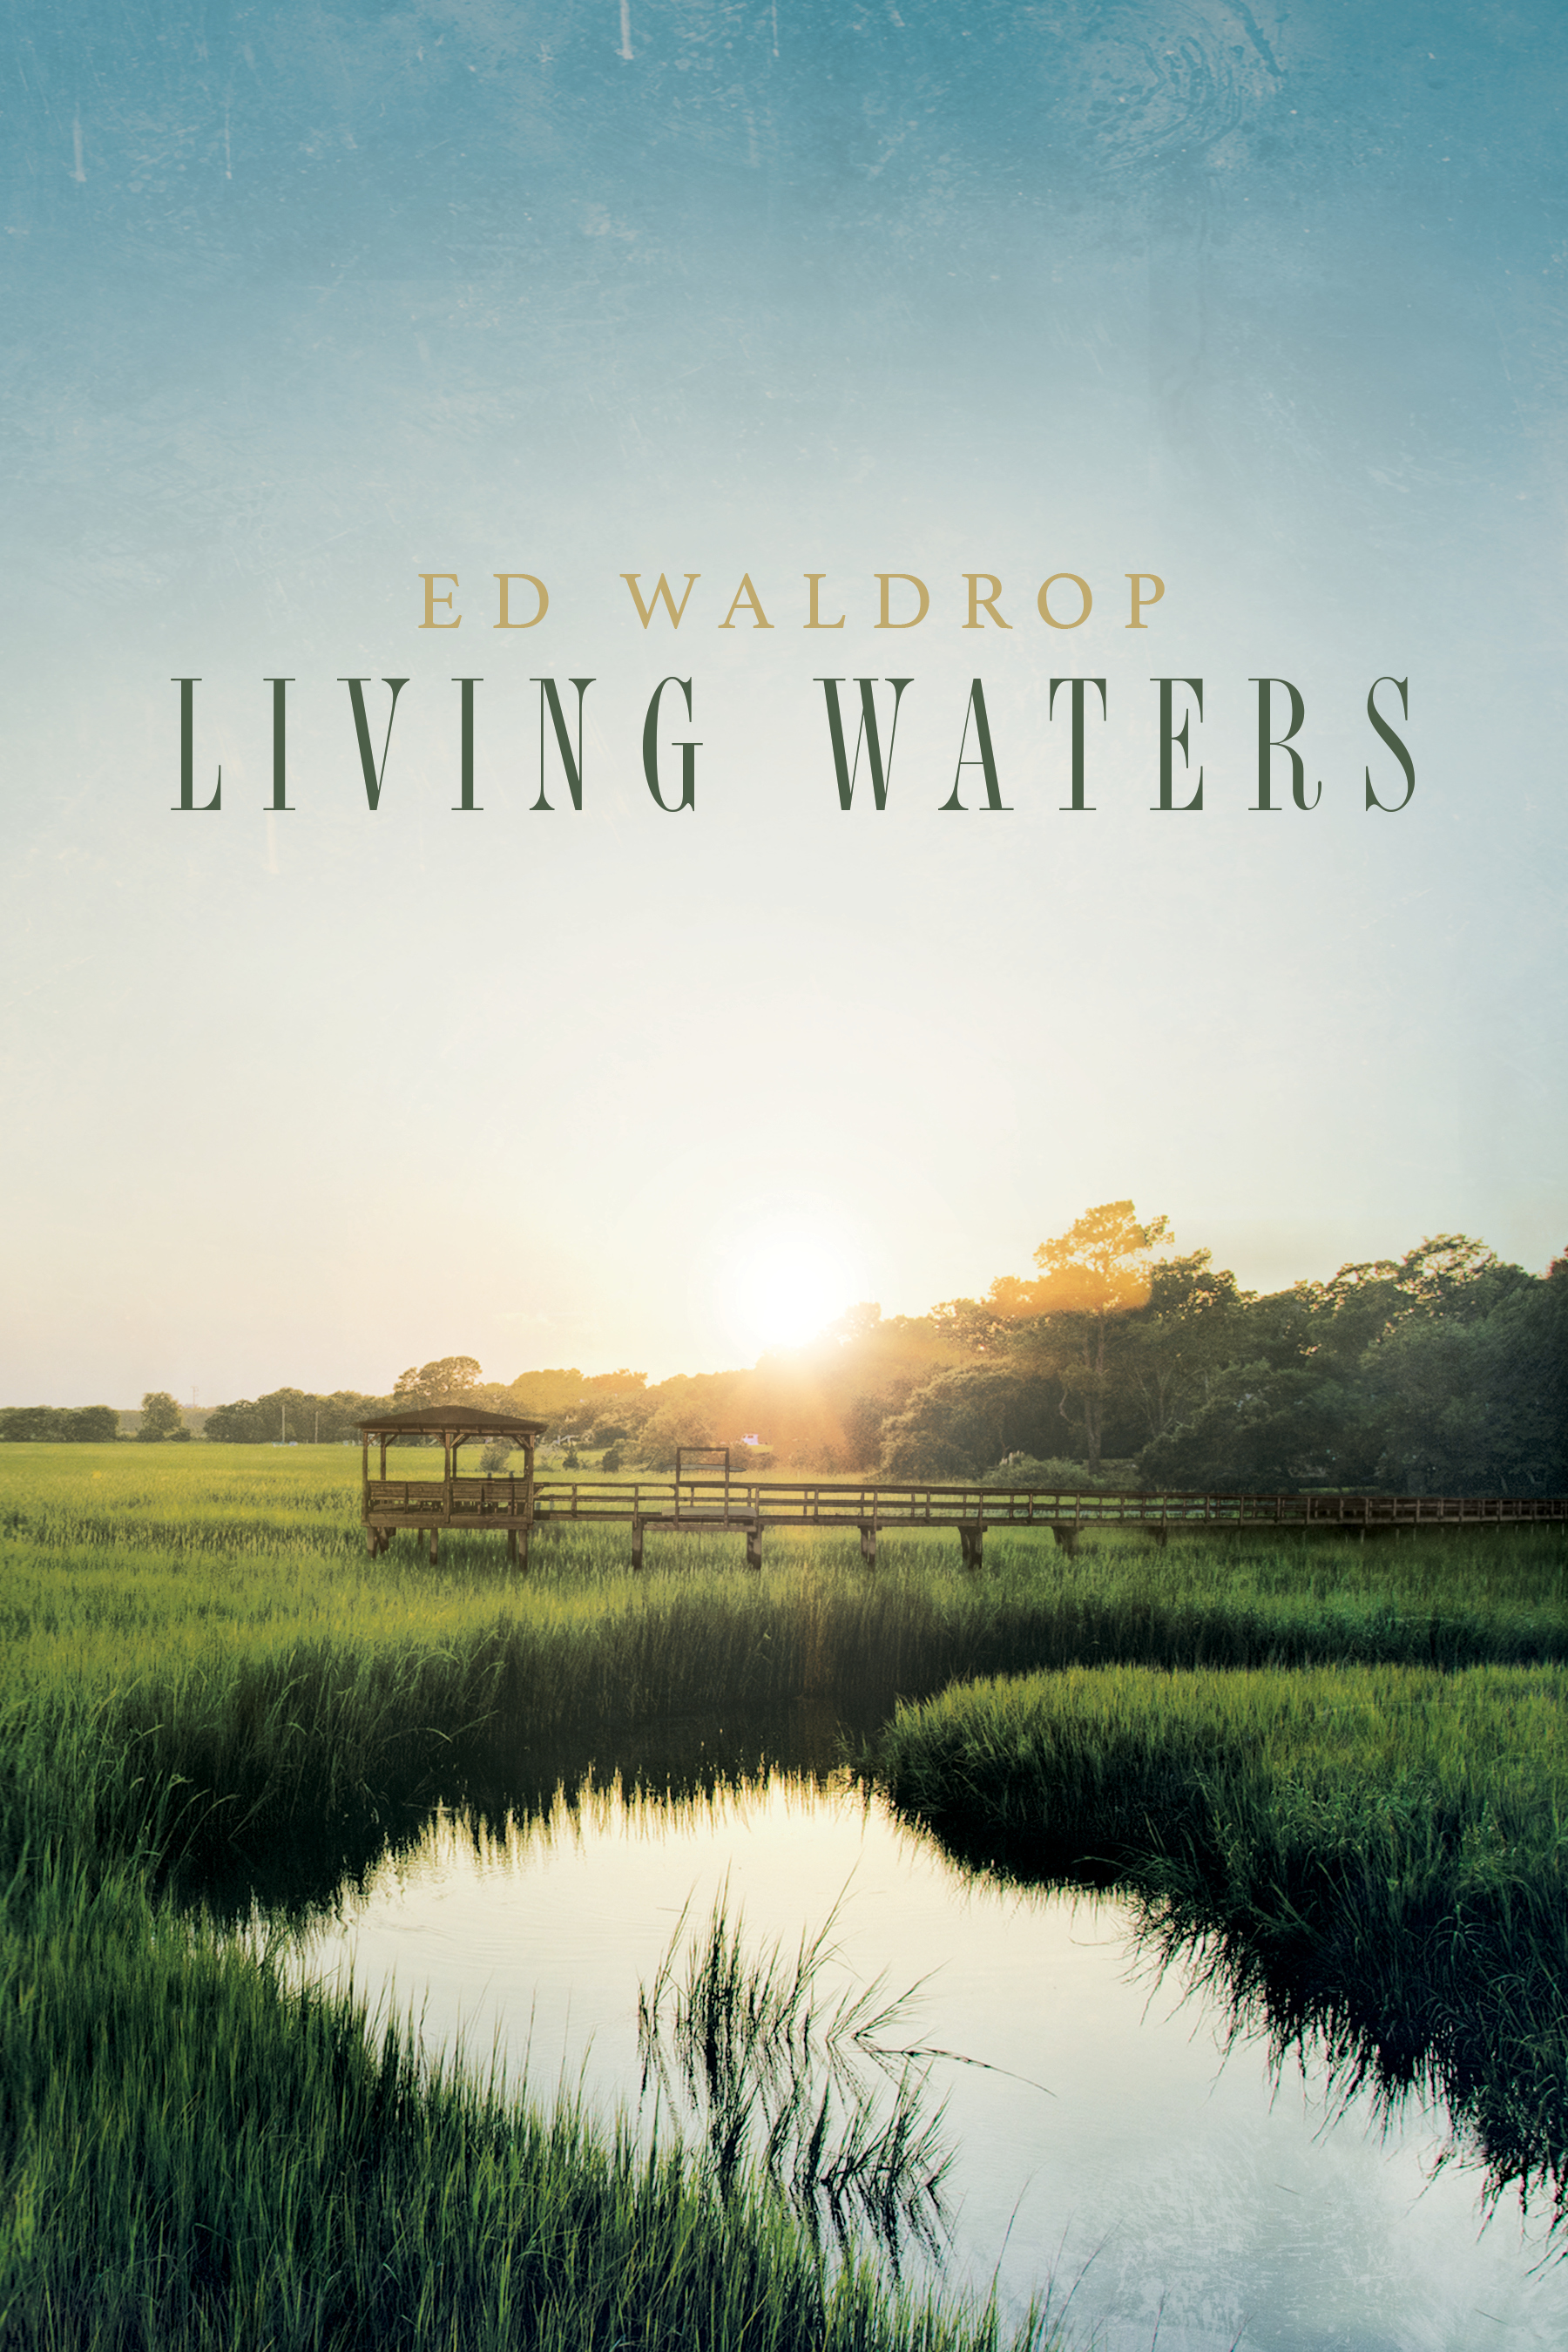 LivingWaters_FrontCover.jpg